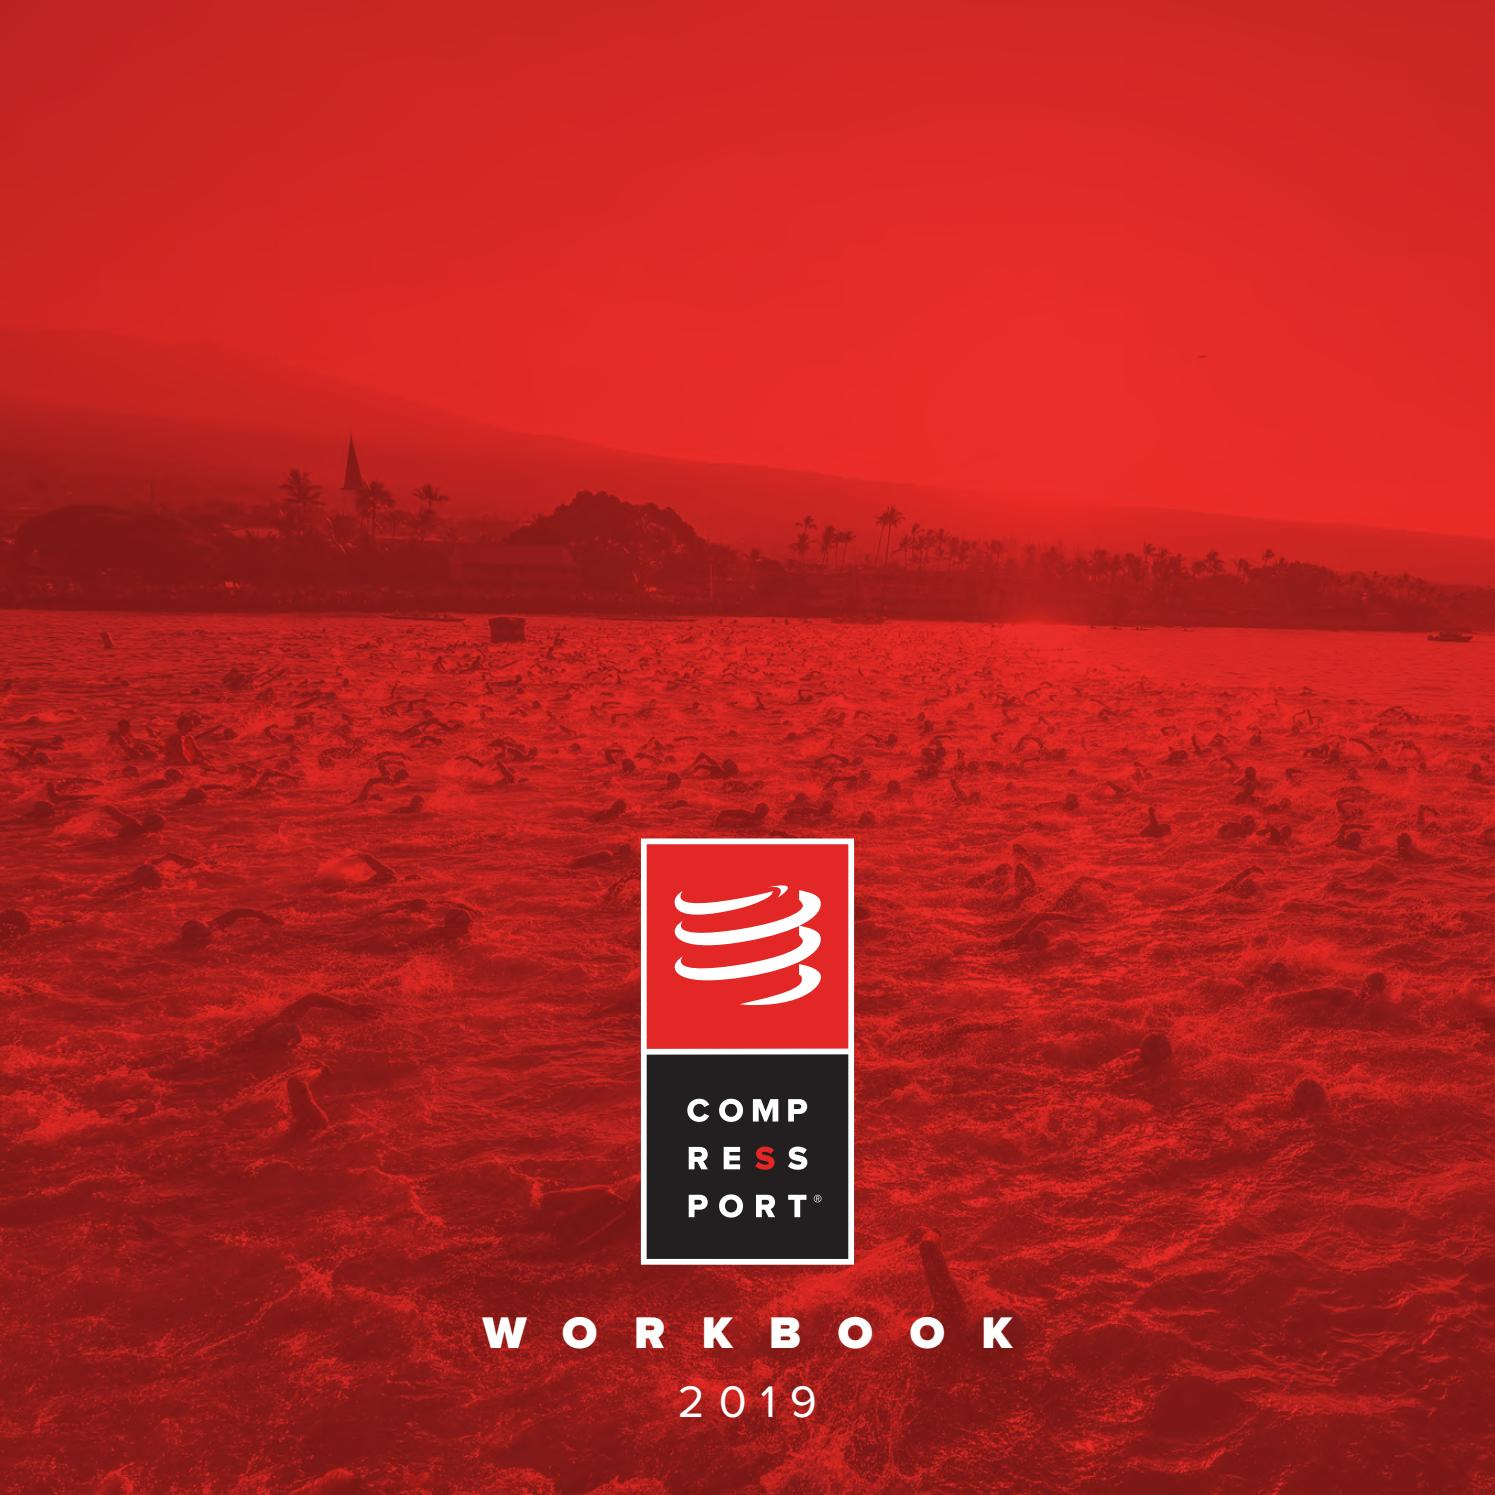 e8e887a5afe Compressport WORKBOOK 2019 by Factory Store - issuu